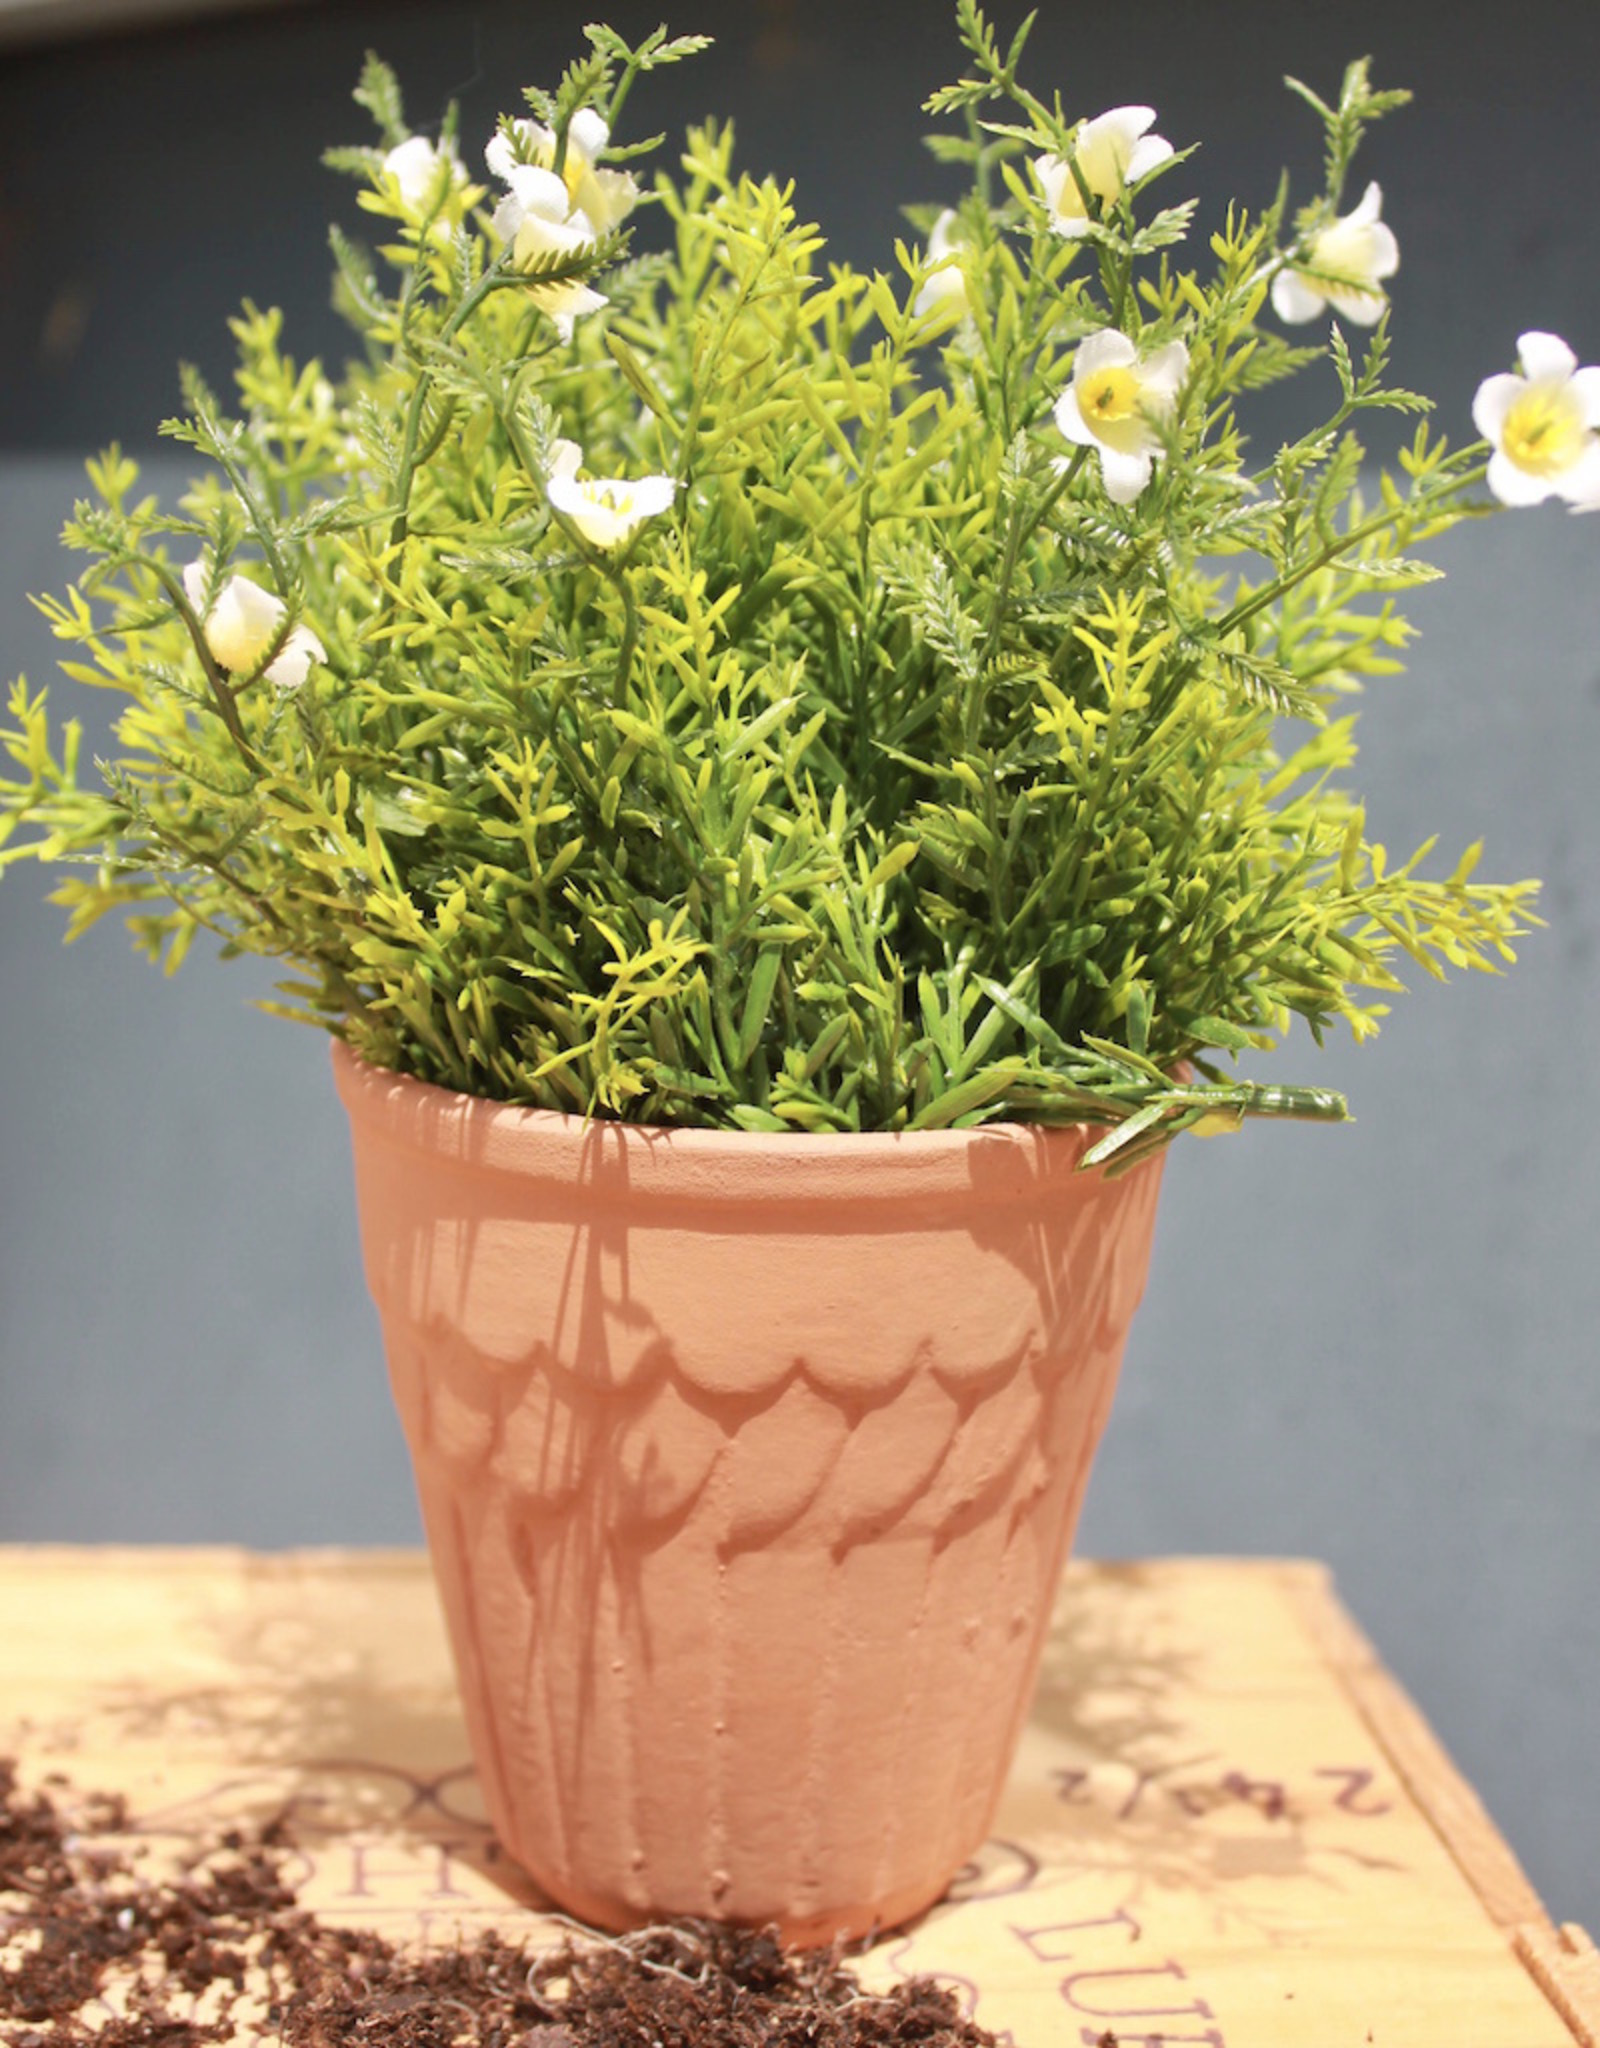 Scalloped Terracotta Pot